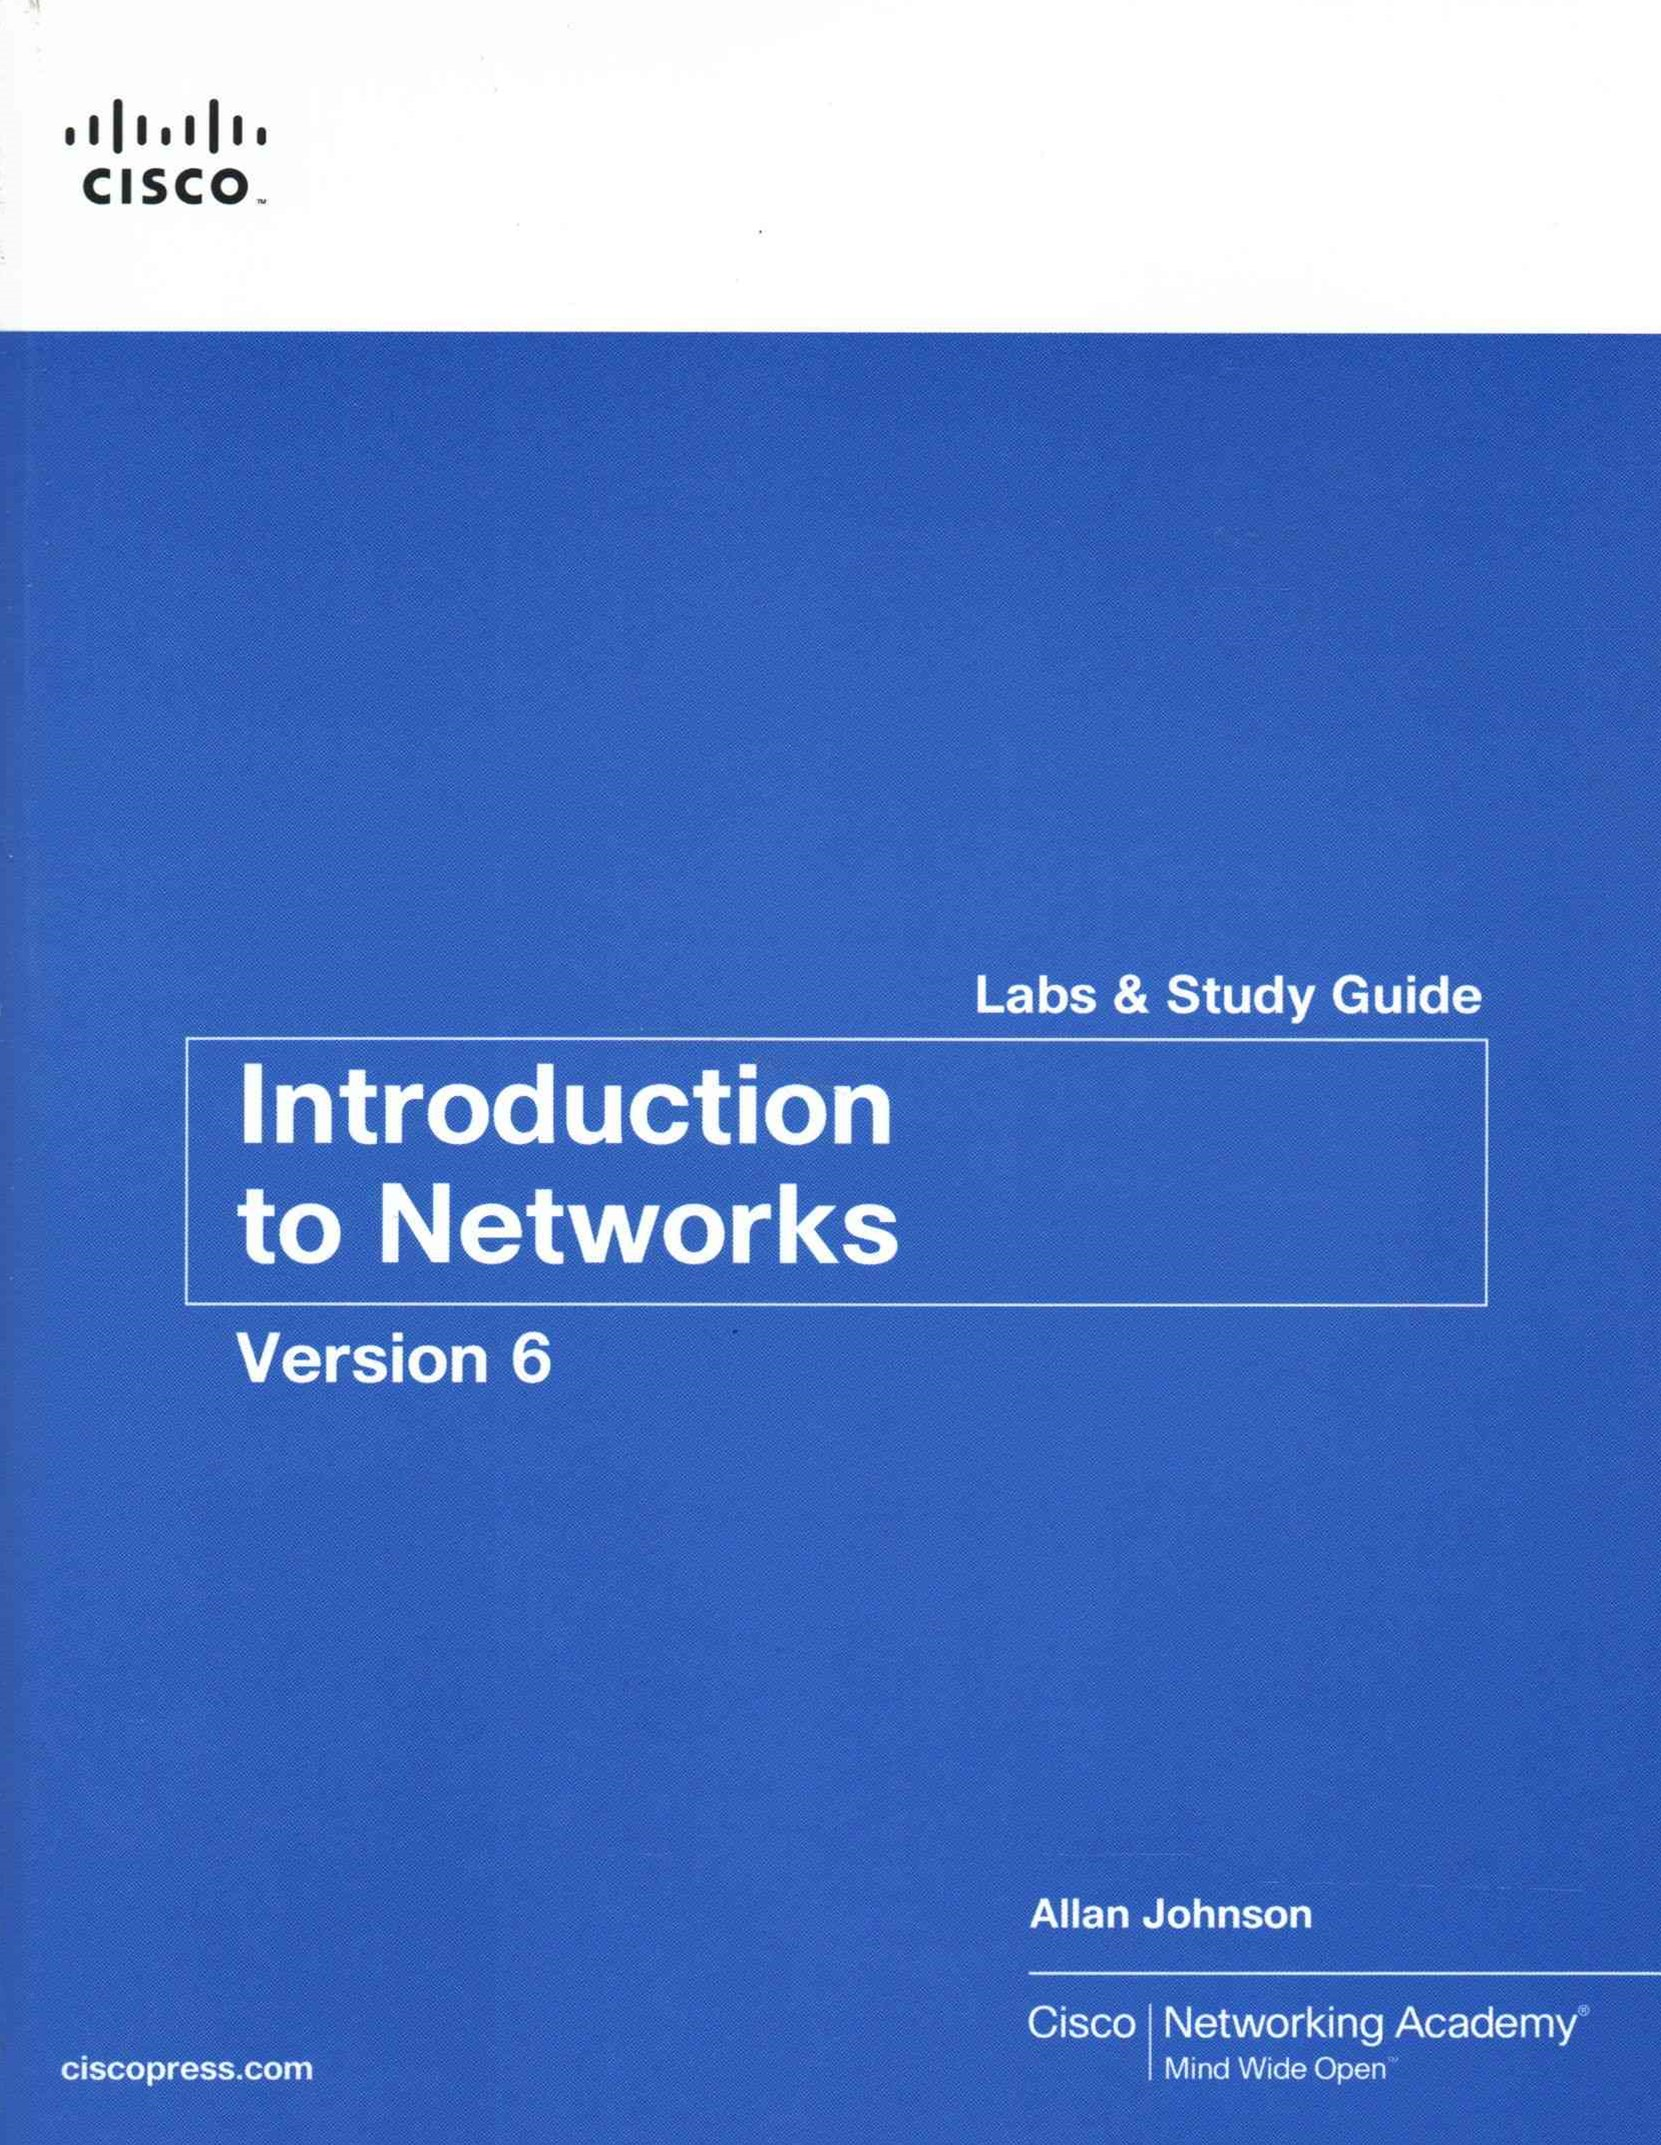 Introduction to Networks V6 Labs and Study Guide